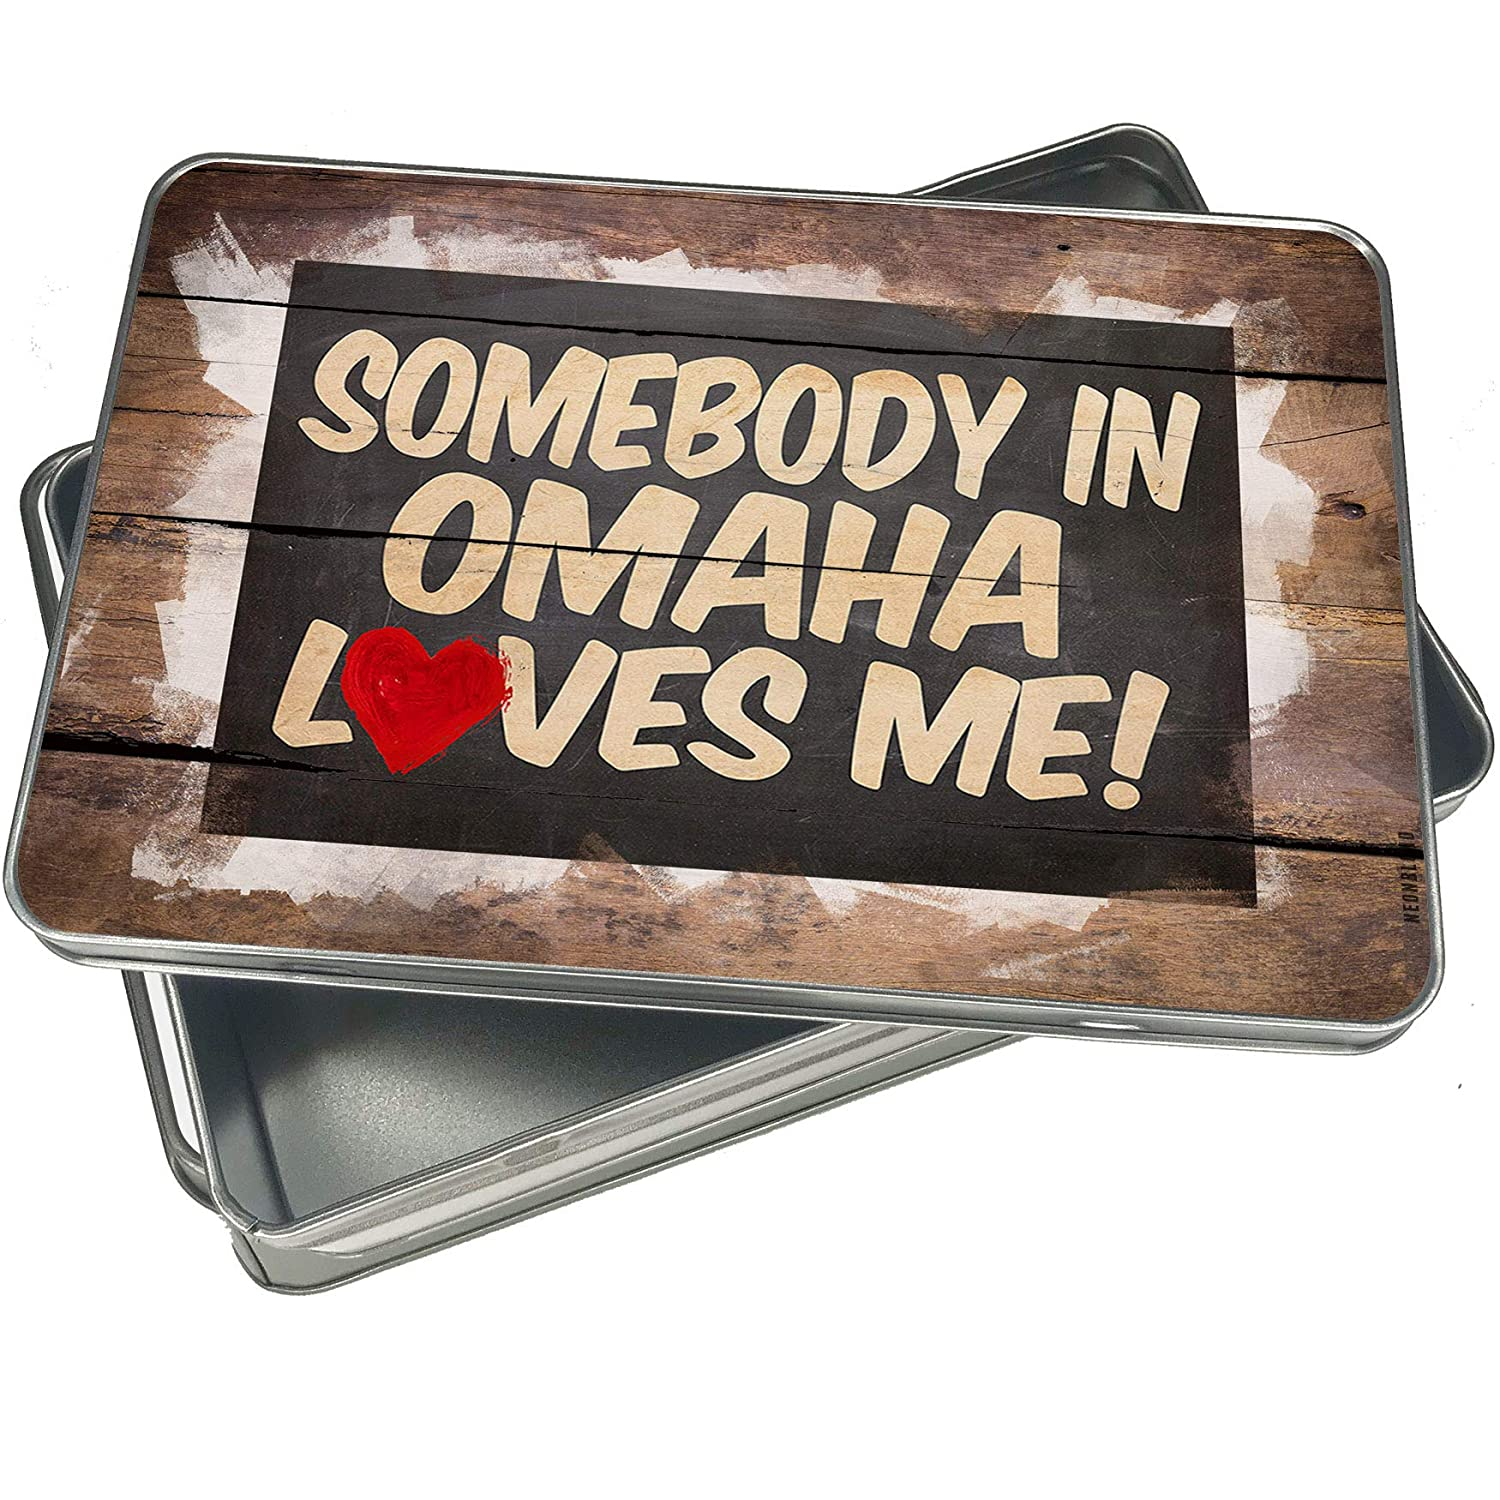 NEONBLOND Cookie Box Somebody in Omaha Loves me, Nebraska Christmas Metal Container